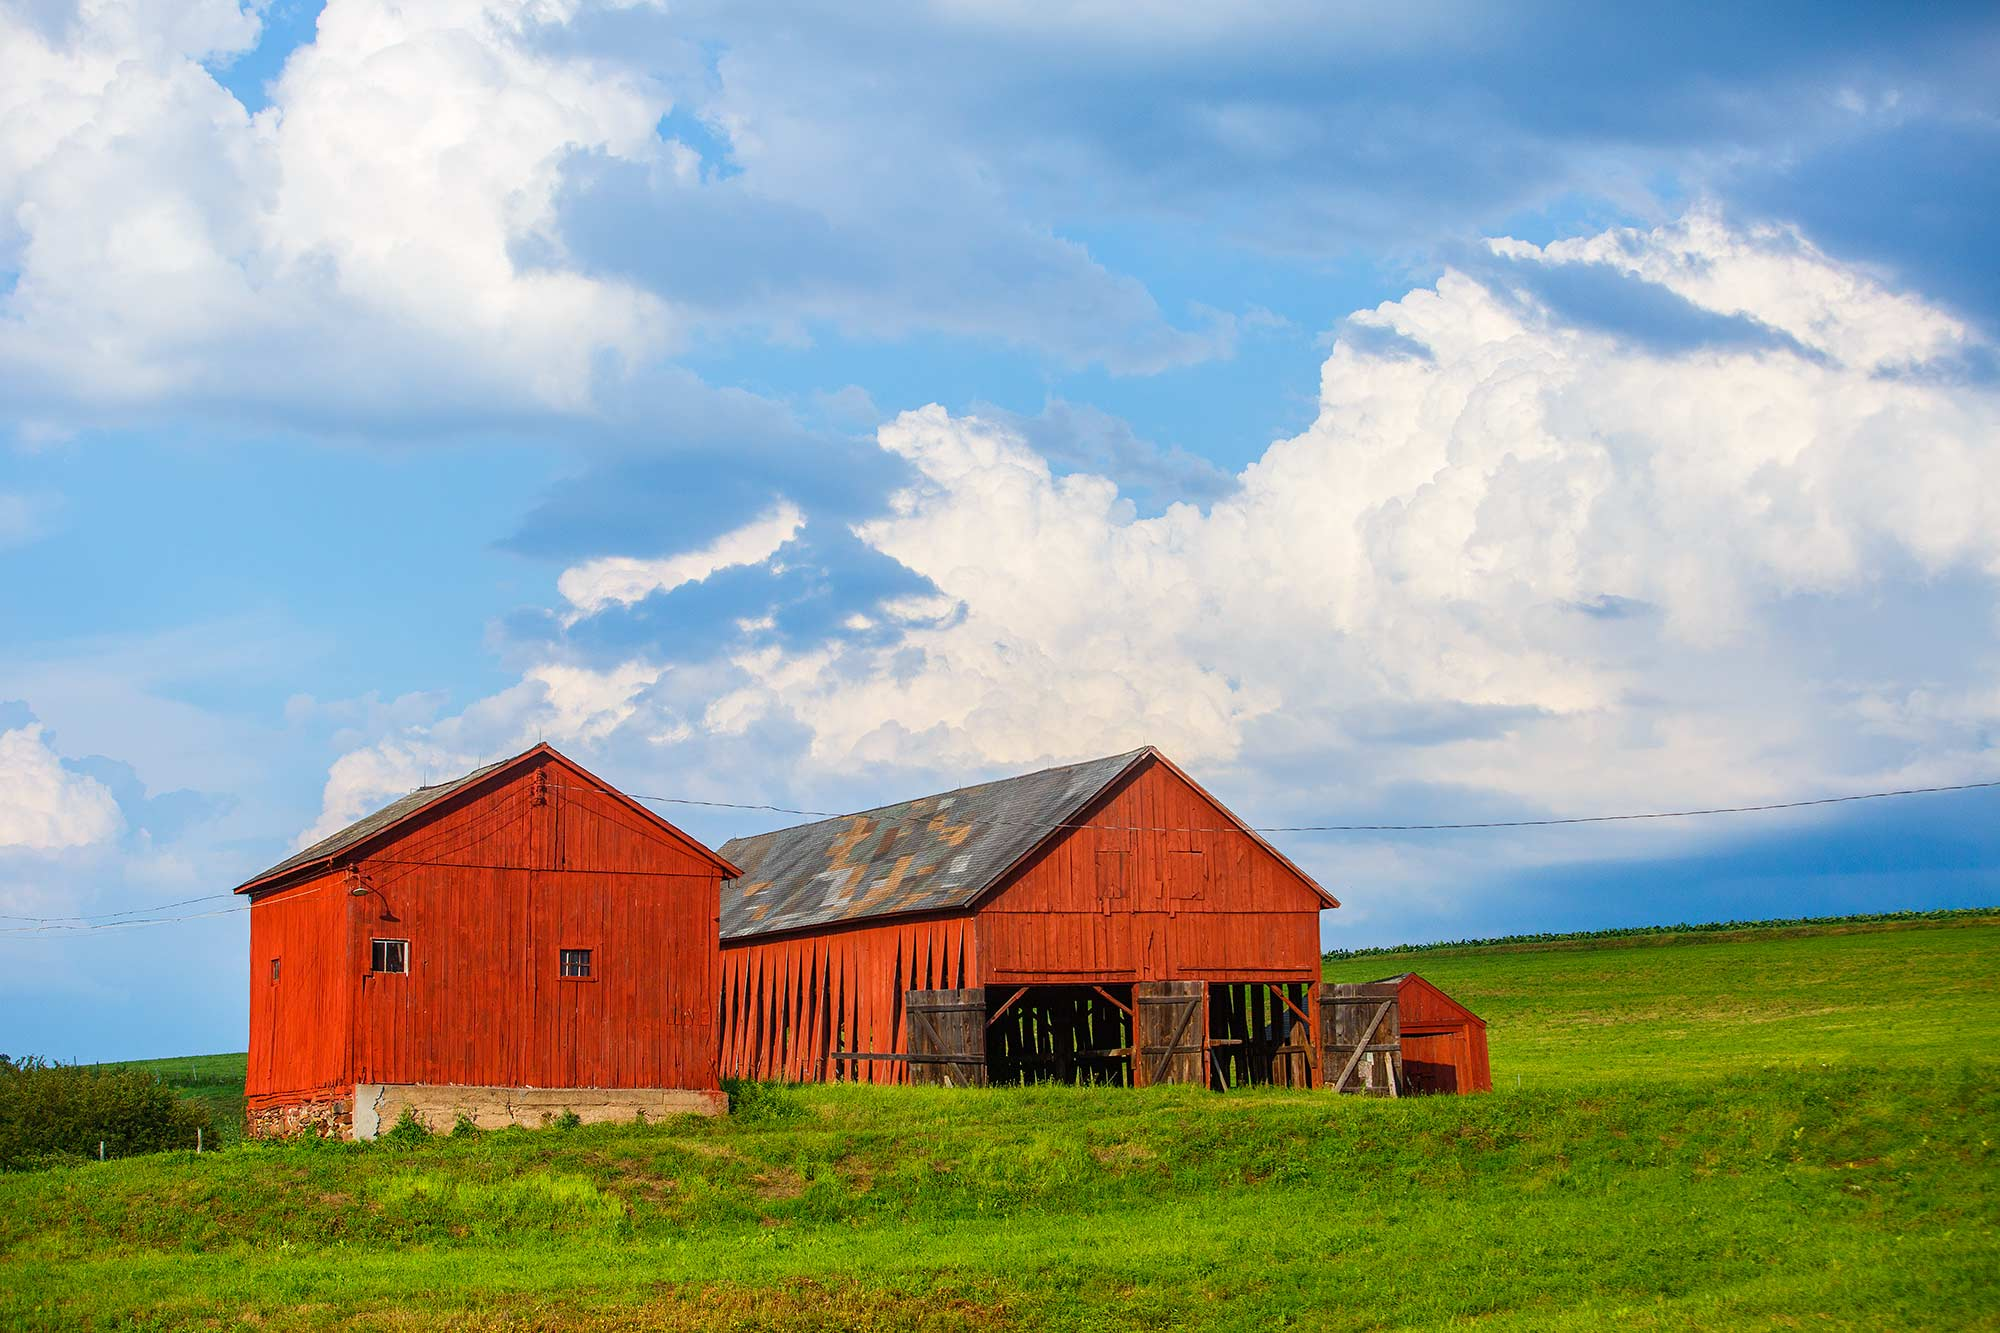 Patchwork Barns, Suffield, CT - 8/4/15